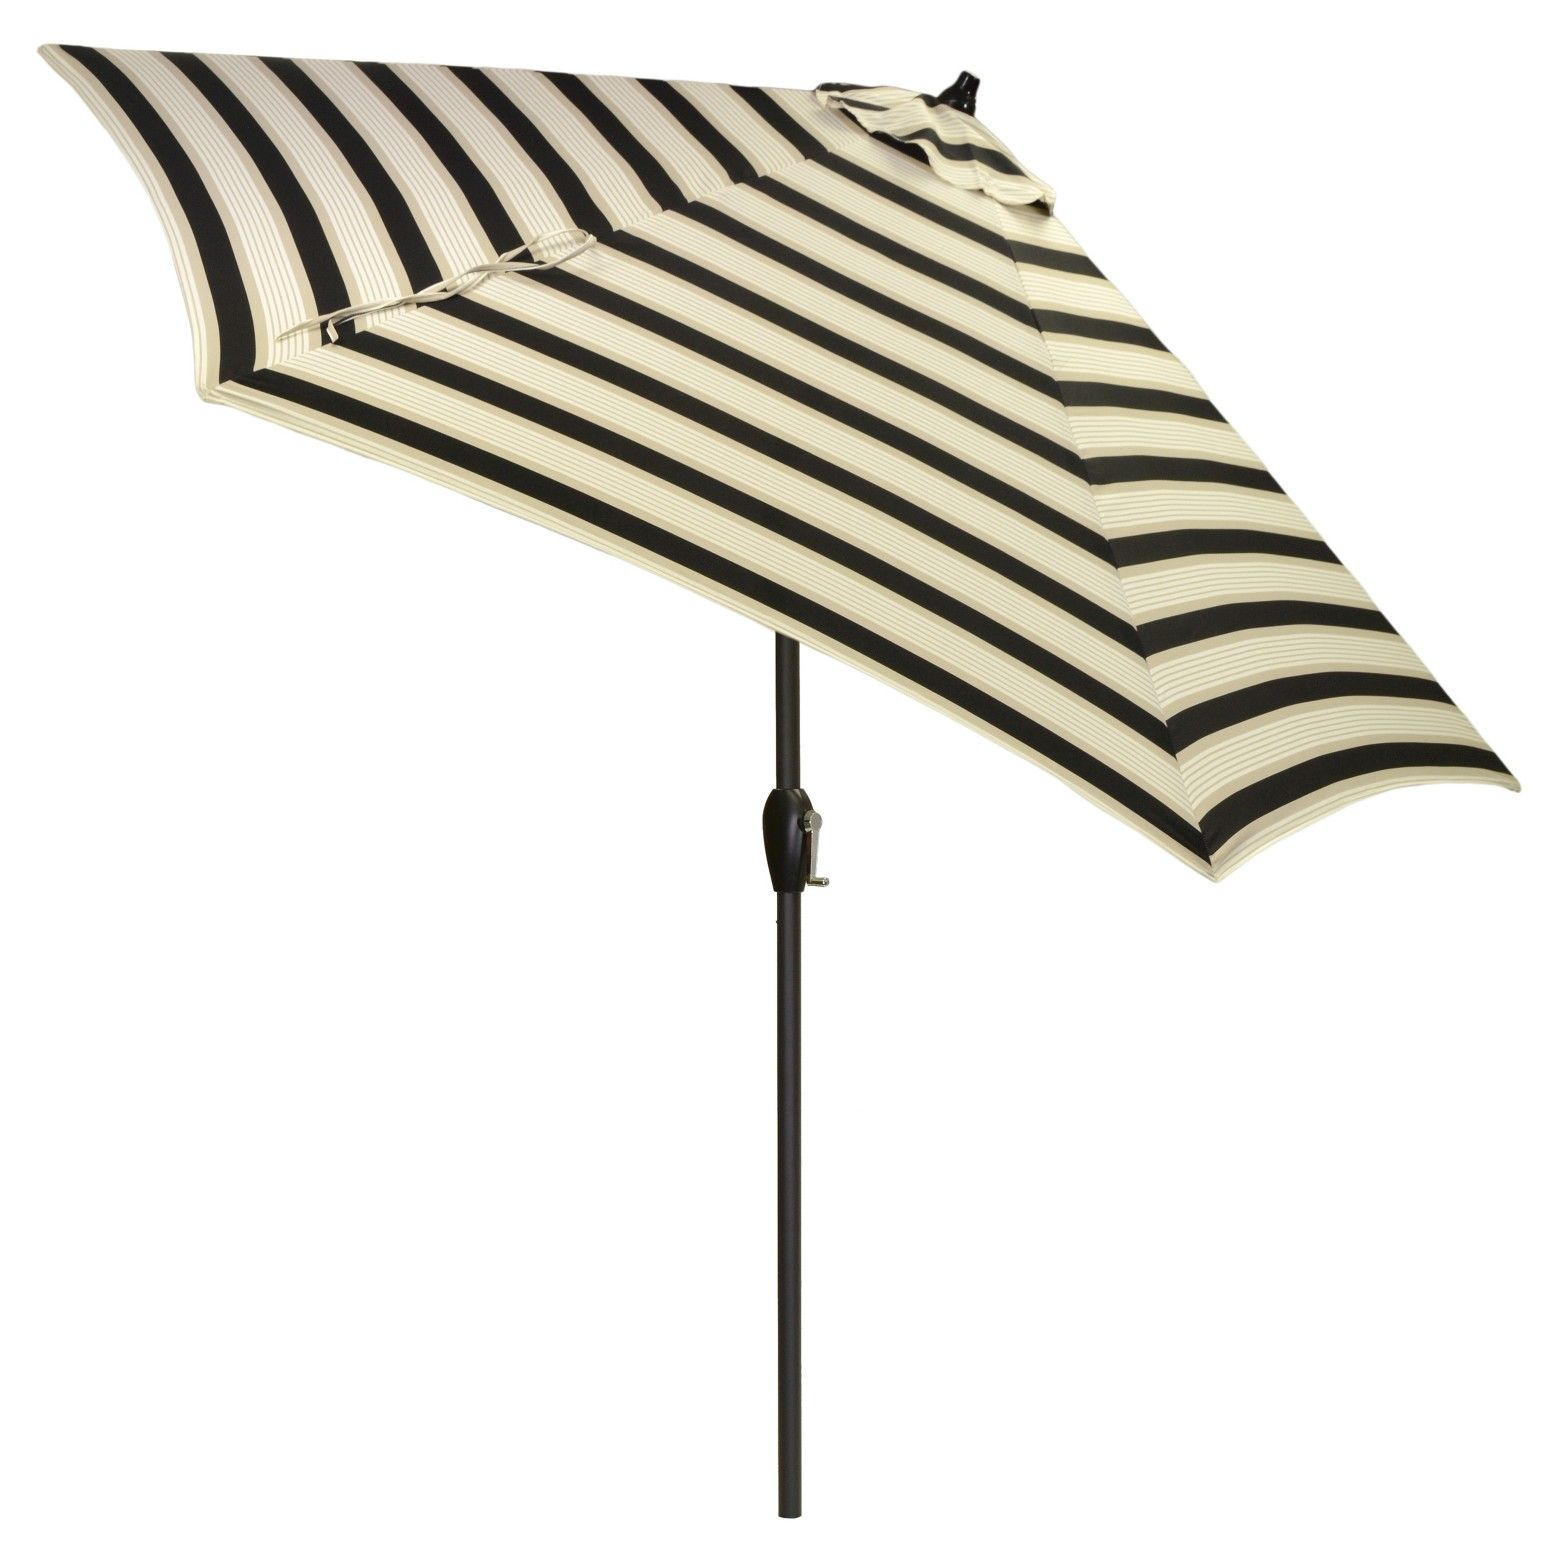 Target Patio Umbrella In Black And Beige Stripes